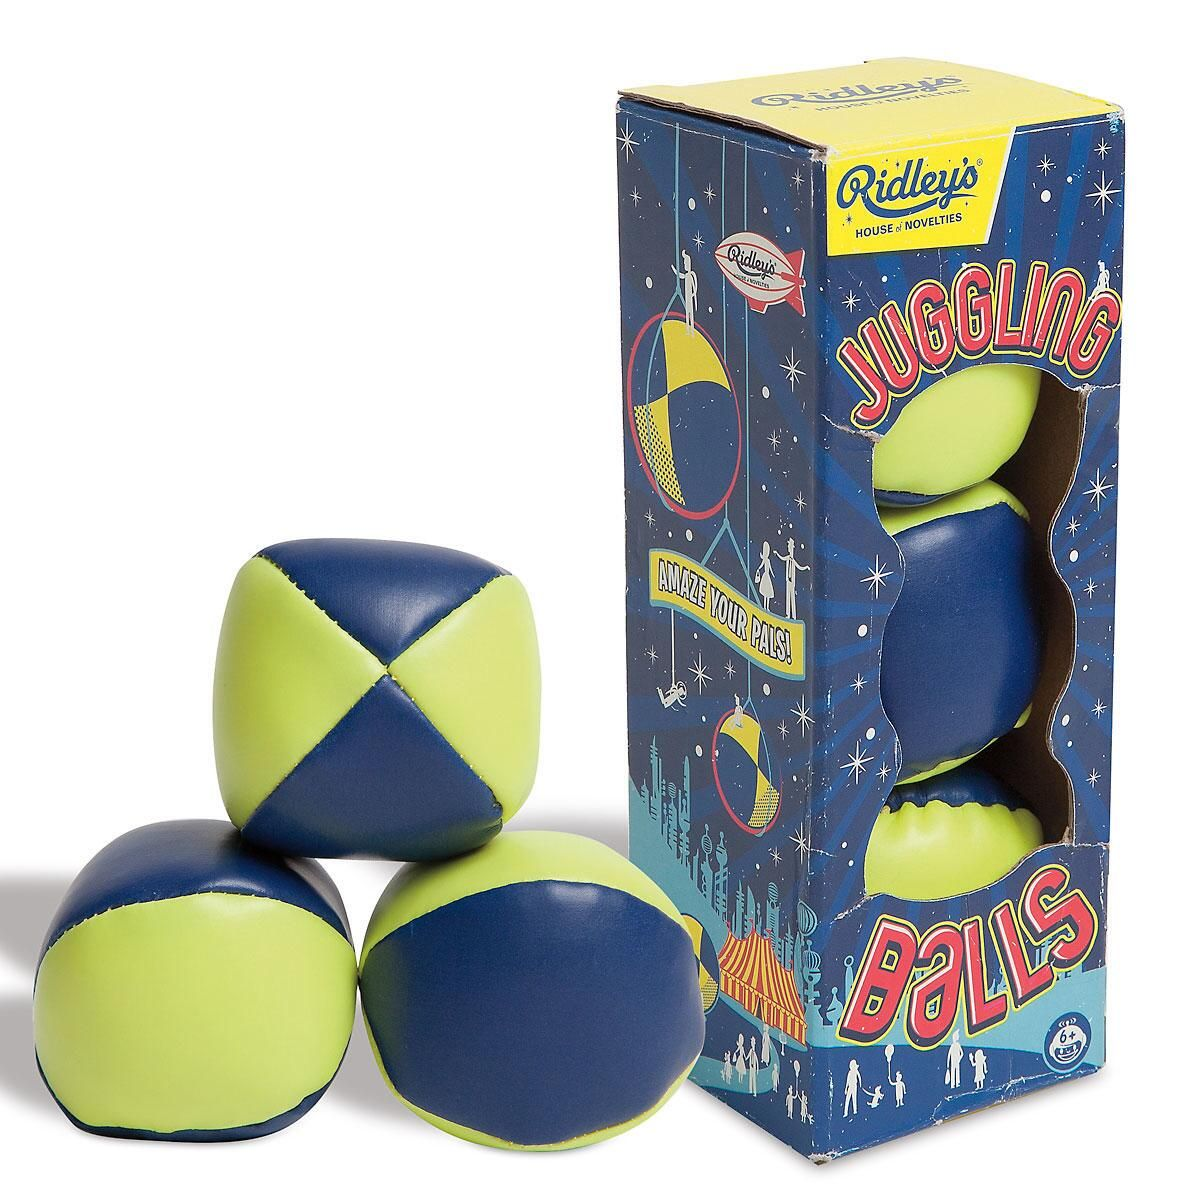 Ridley's® Utopia Neon Juggling Balls by Wild & Wolf